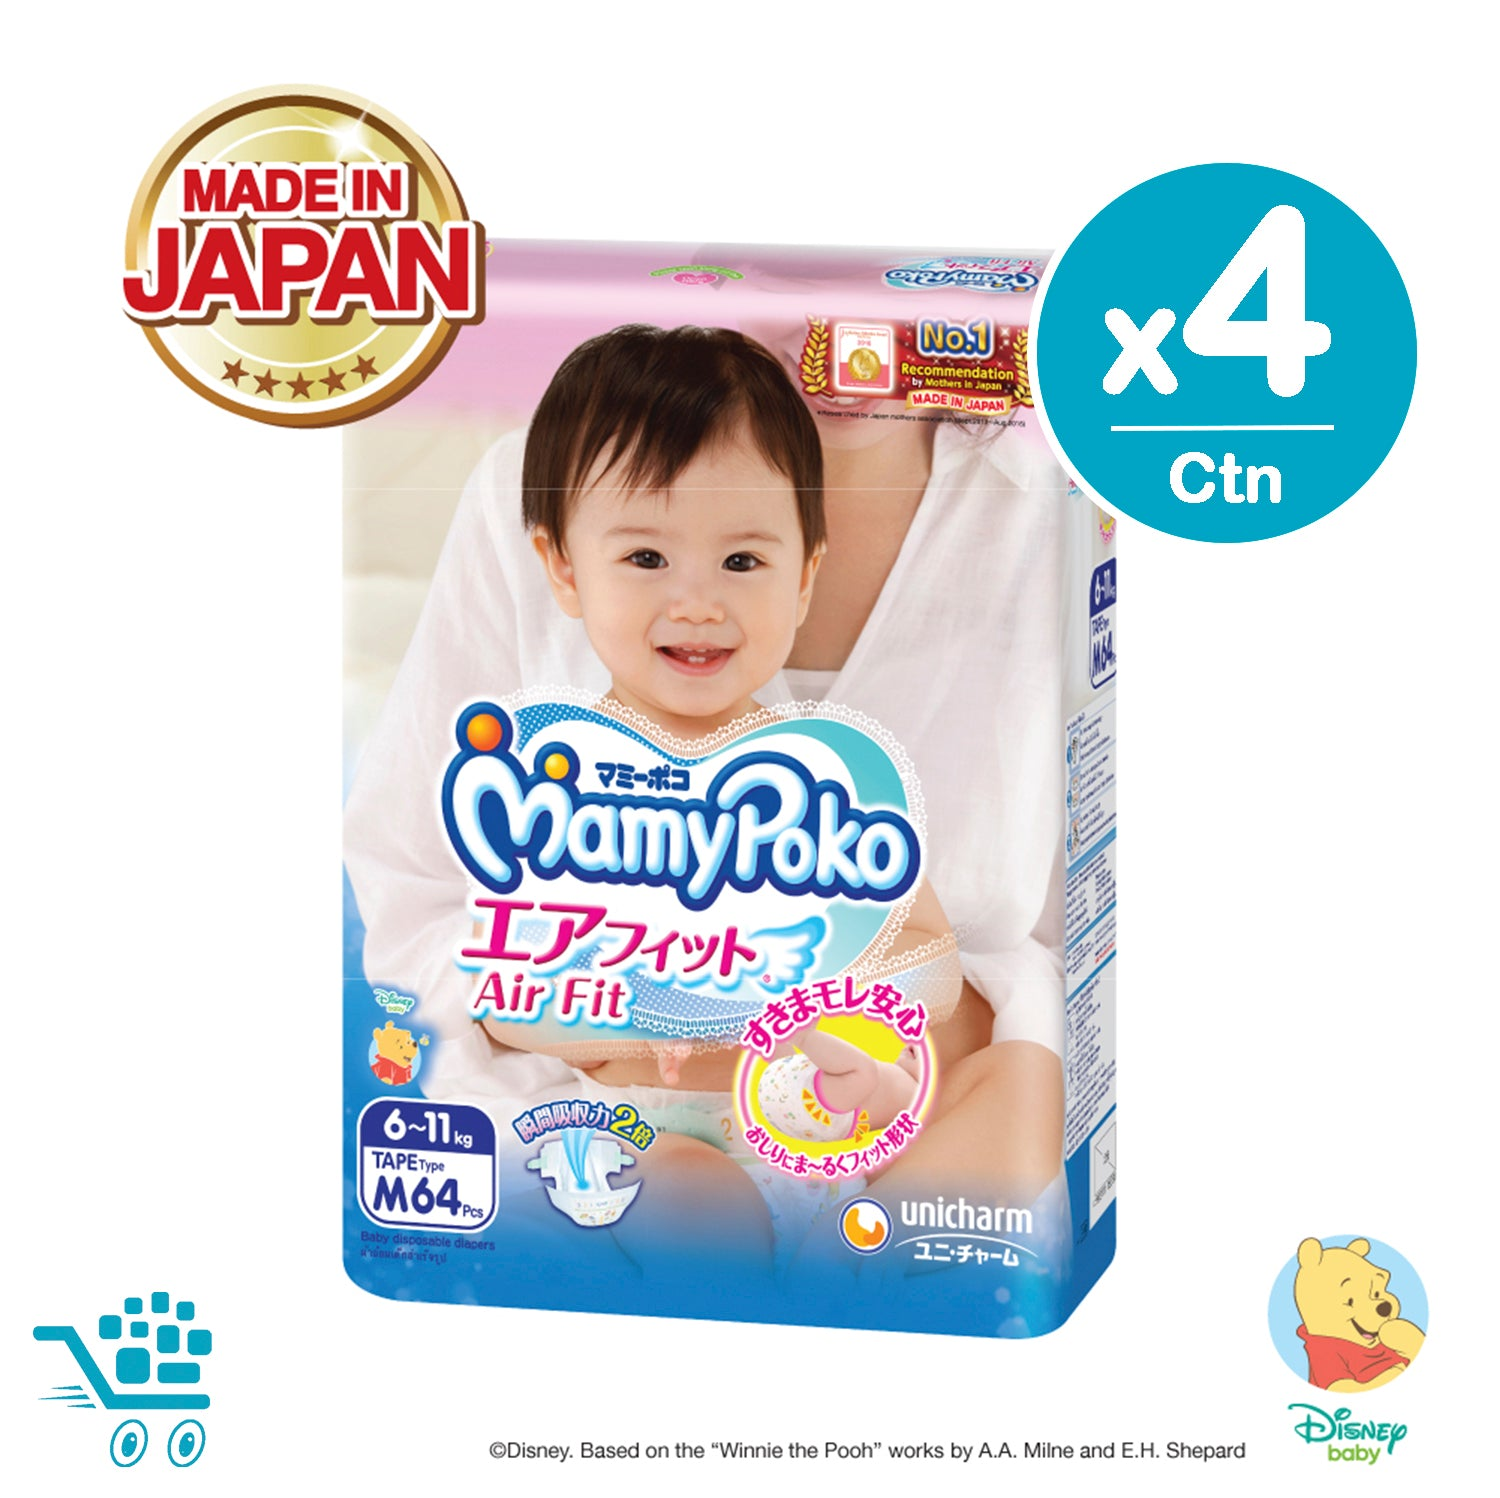 Mamypoko Air Fit Tape Type - M 64 pieces x 4 packs JPQ